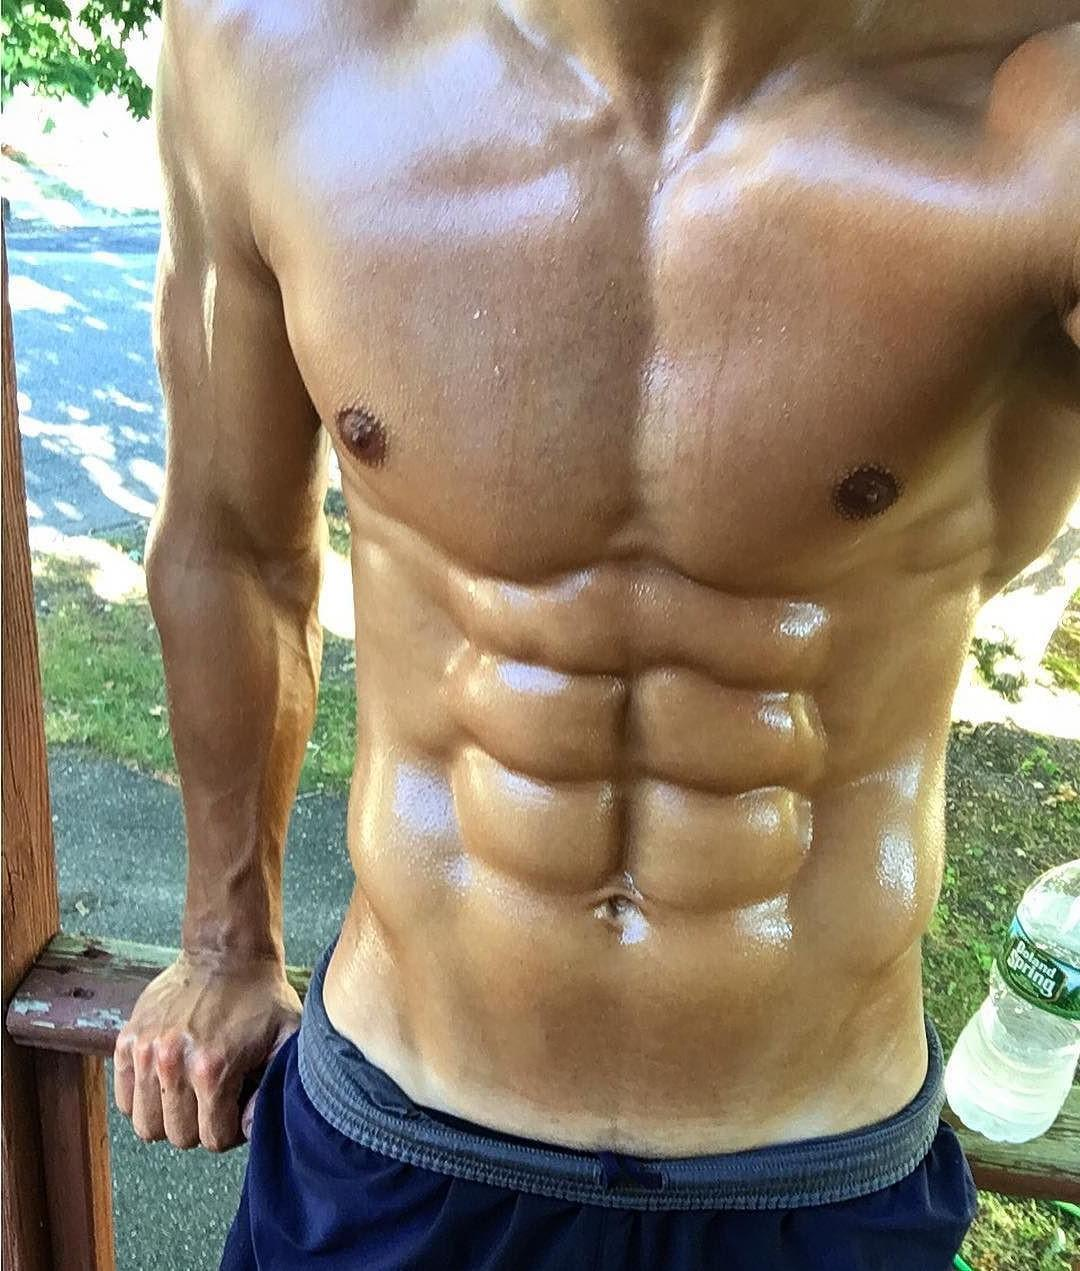 ripped-sweaty-sixpack-abs-hunk-bare-chest-fit-body-abdominal-muscles-selfie